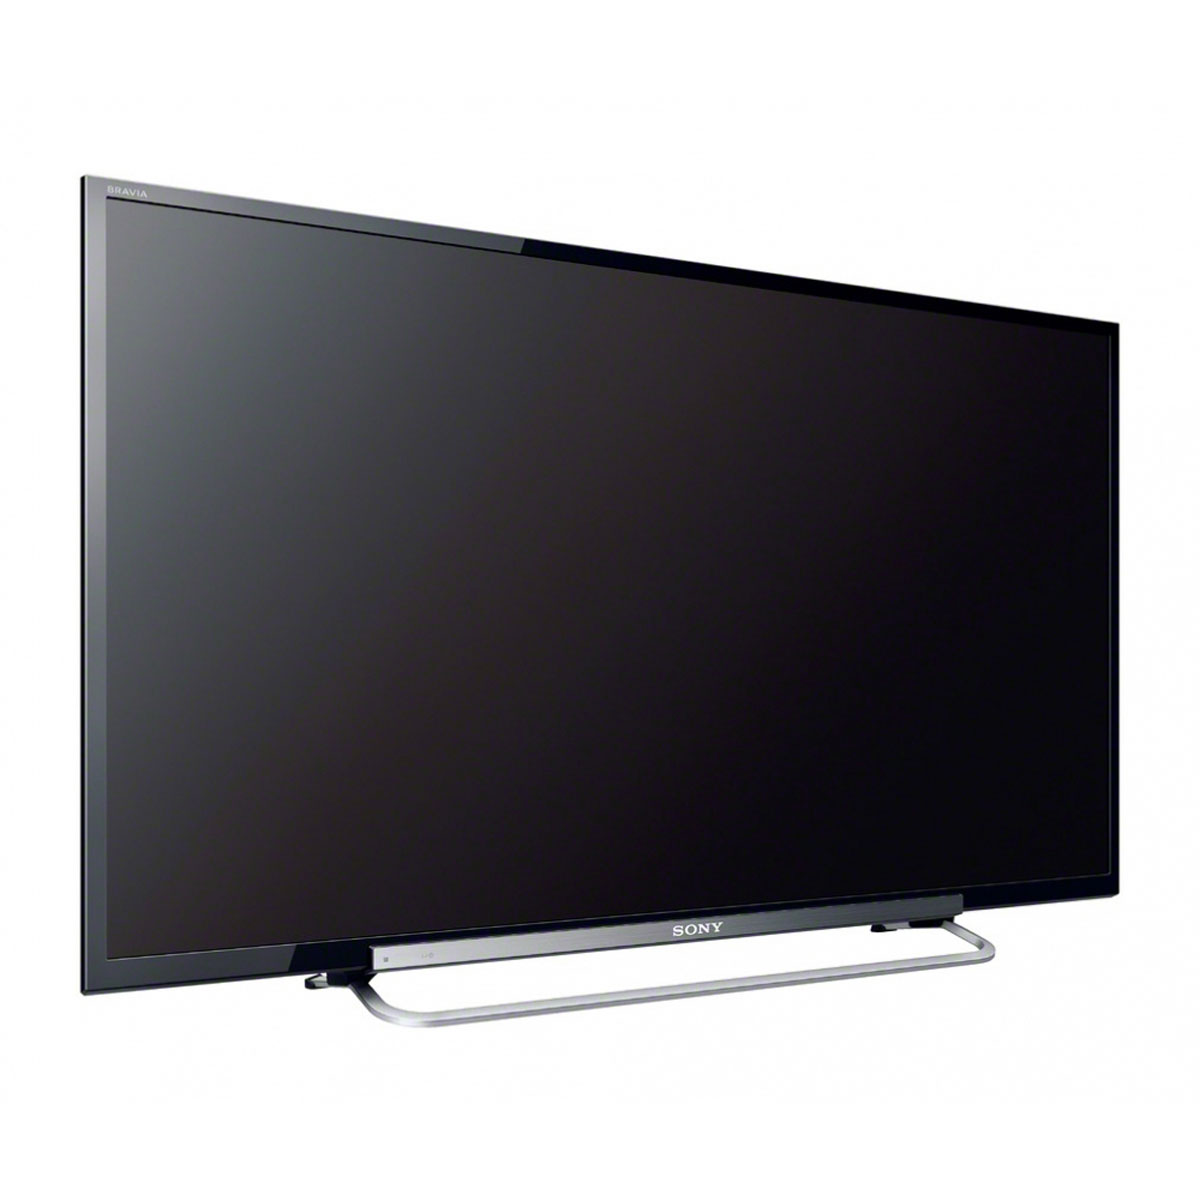 sony kdl 40r470 tv sony sur ldlc. Black Bedroom Furniture Sets. Home Design Ideas